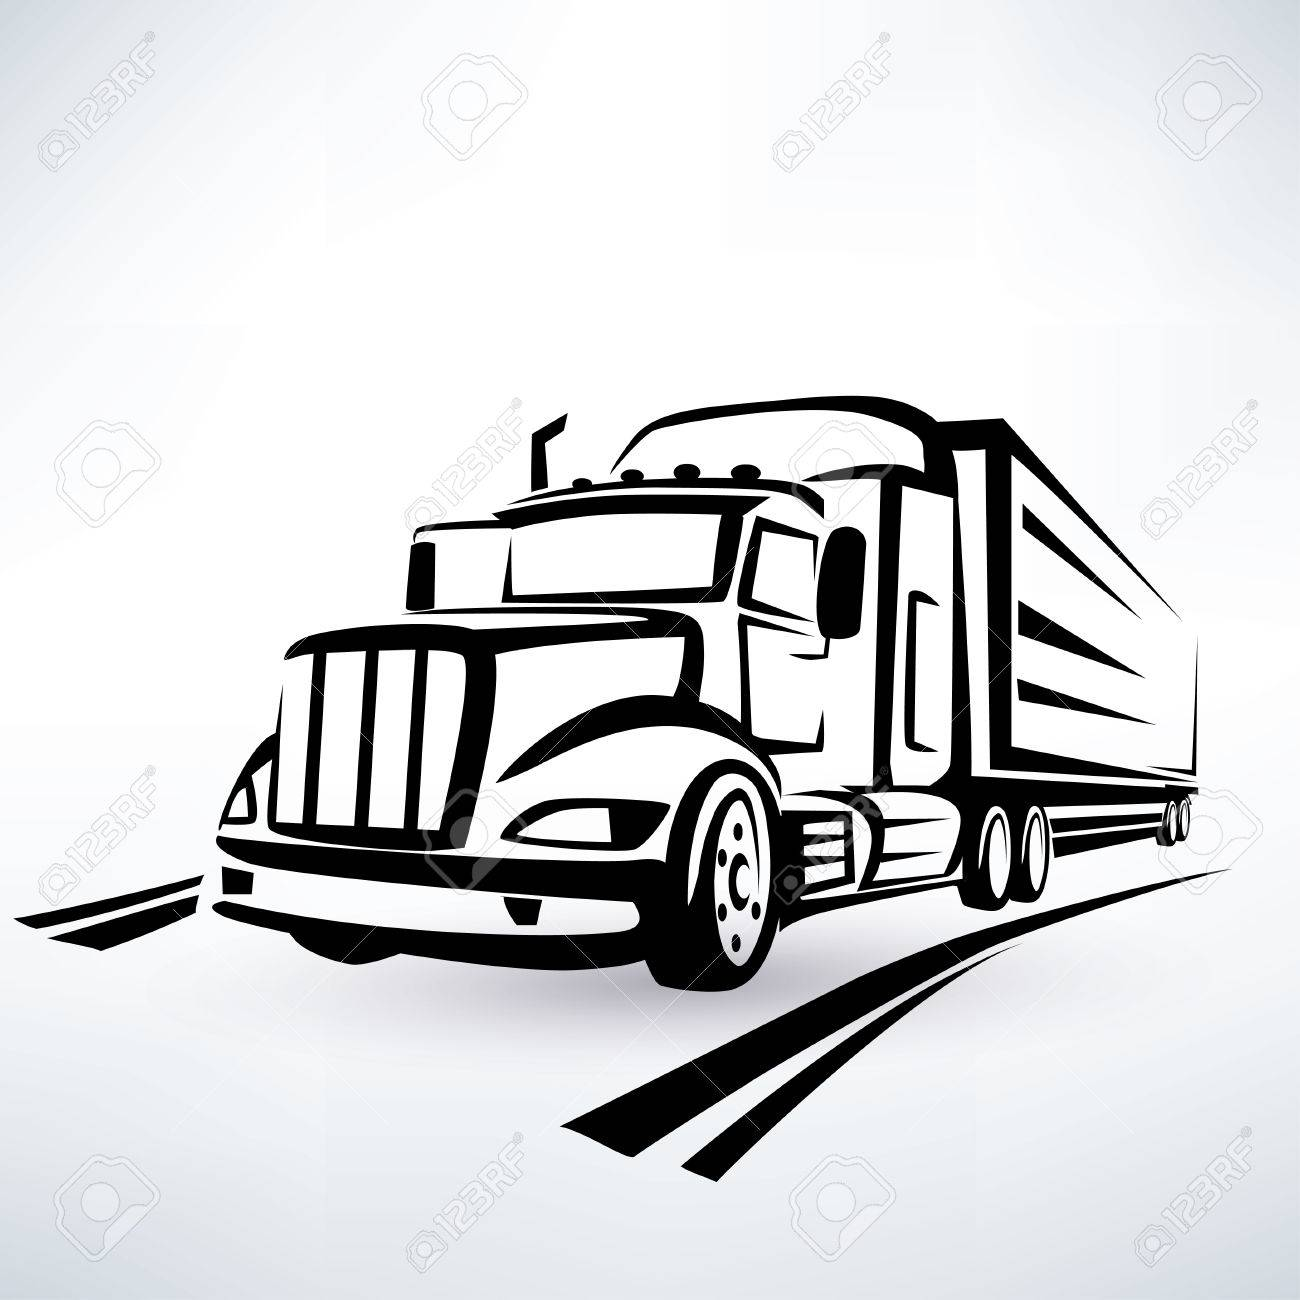 american lorry vector silhouette, truck outlined sketch - 28455783